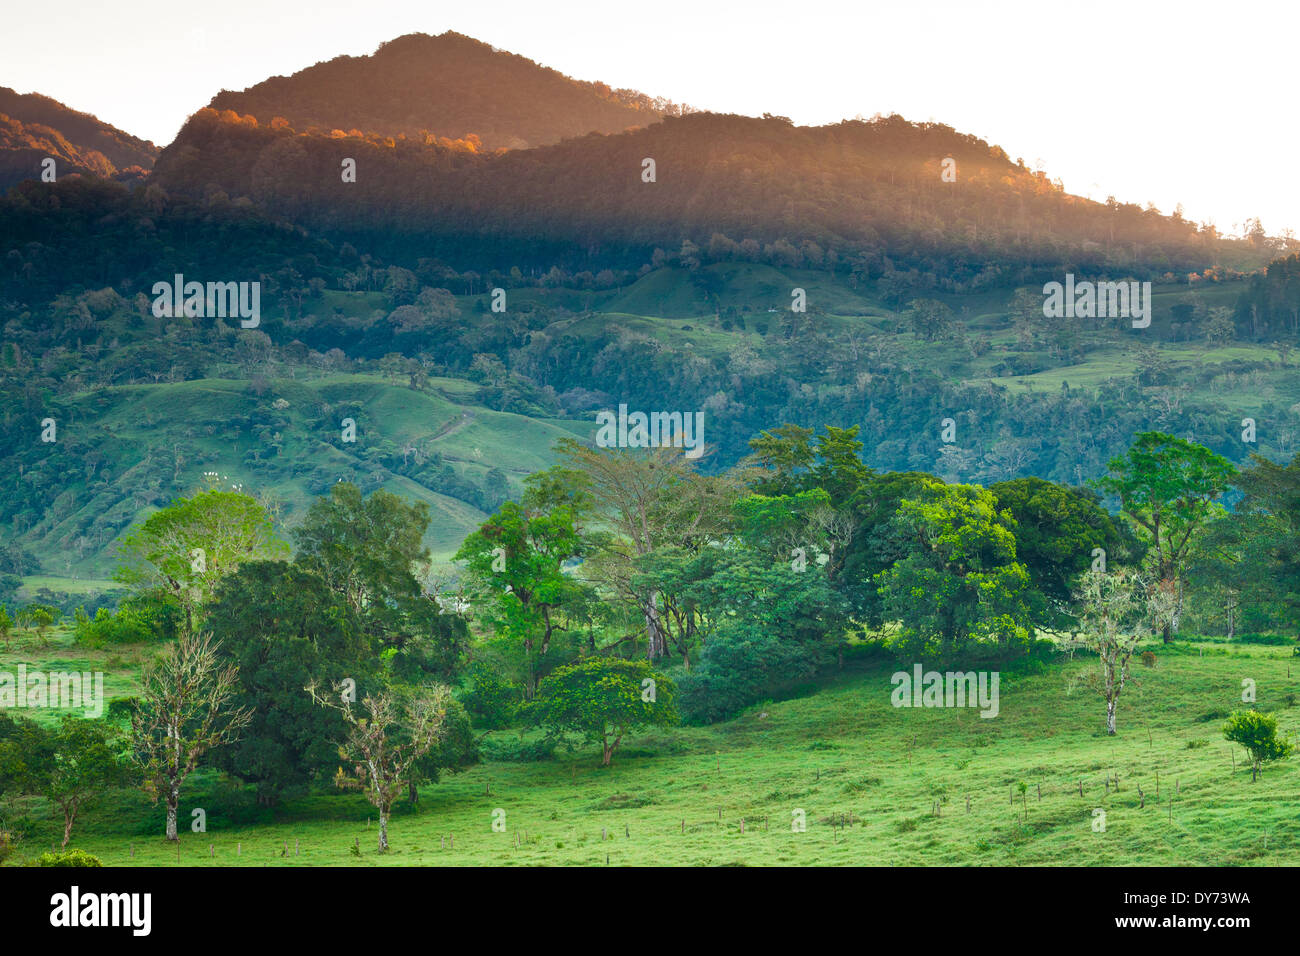 First light on the forested hillsides just outside the Volcan village in the Chiriqui province, Republic of Panama. - Stock Image